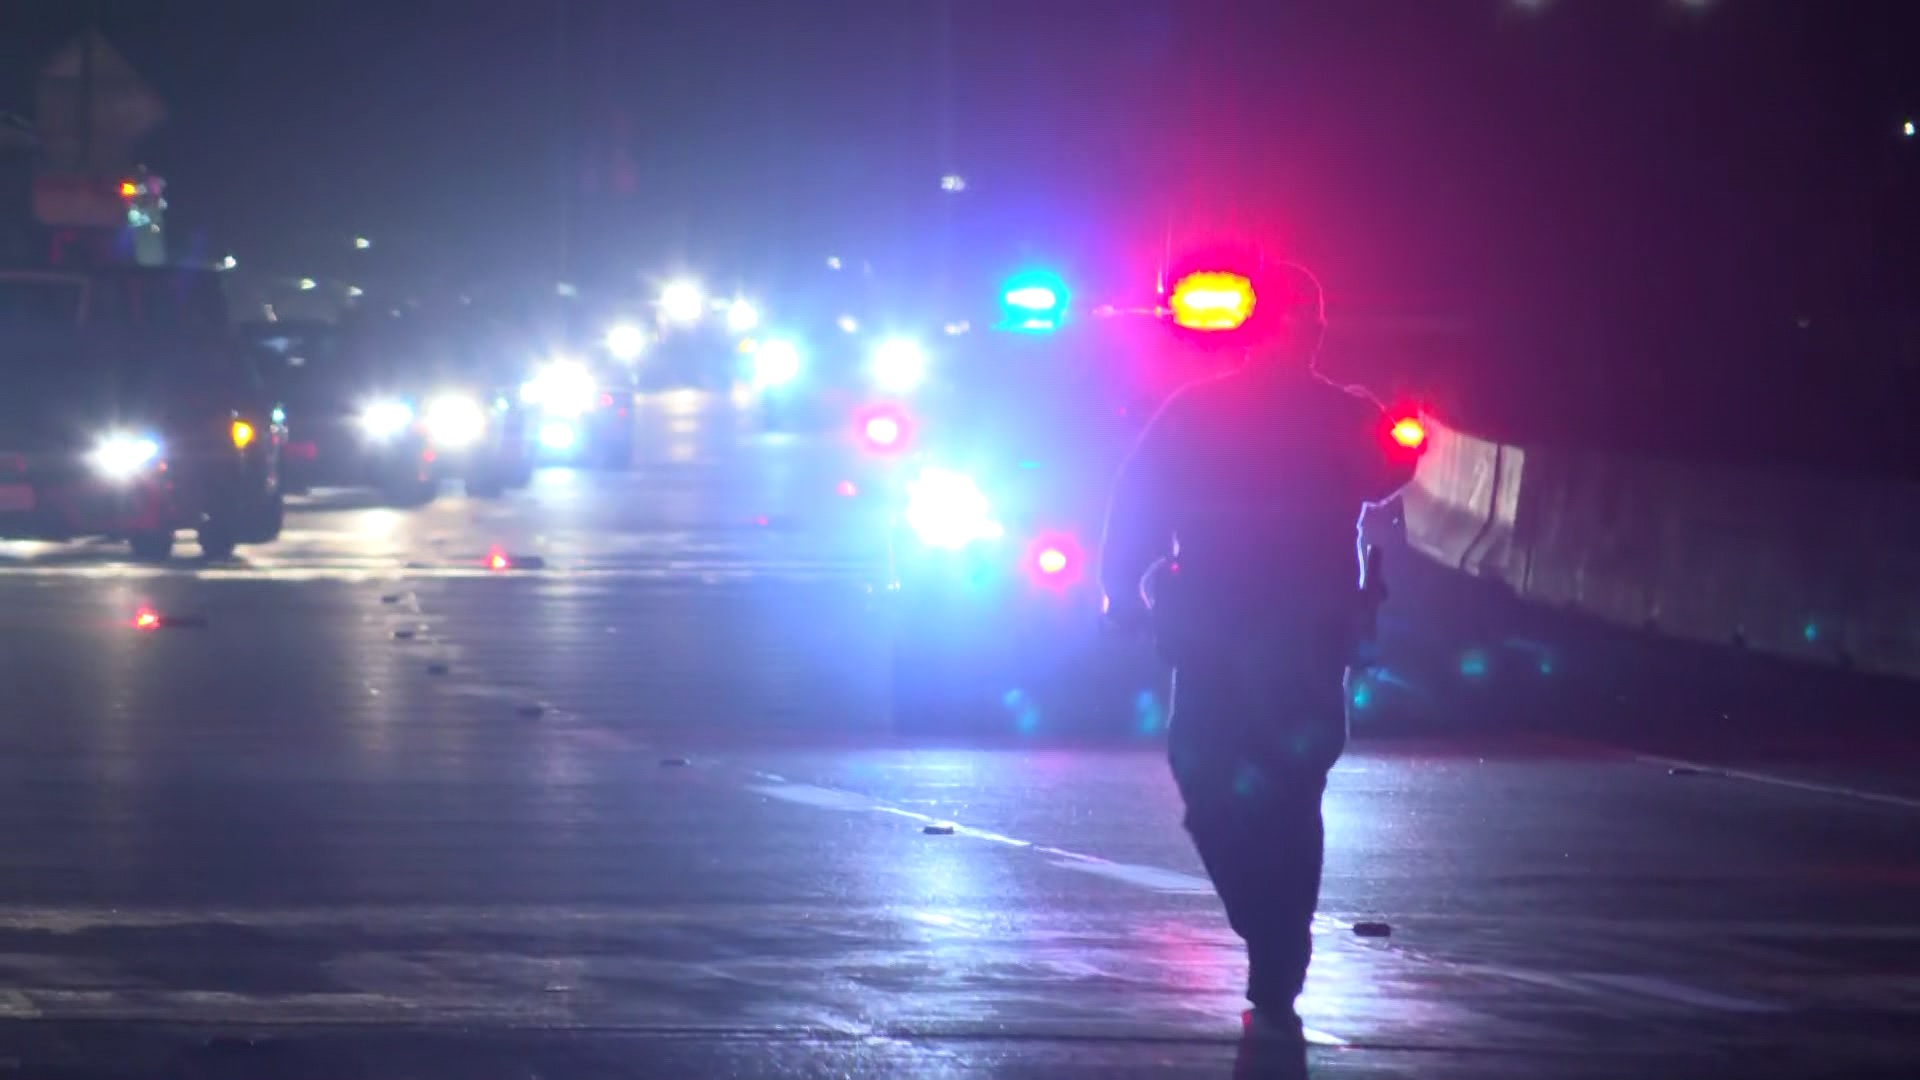 CHP: Fatal shooting on Highway 180 under investigation